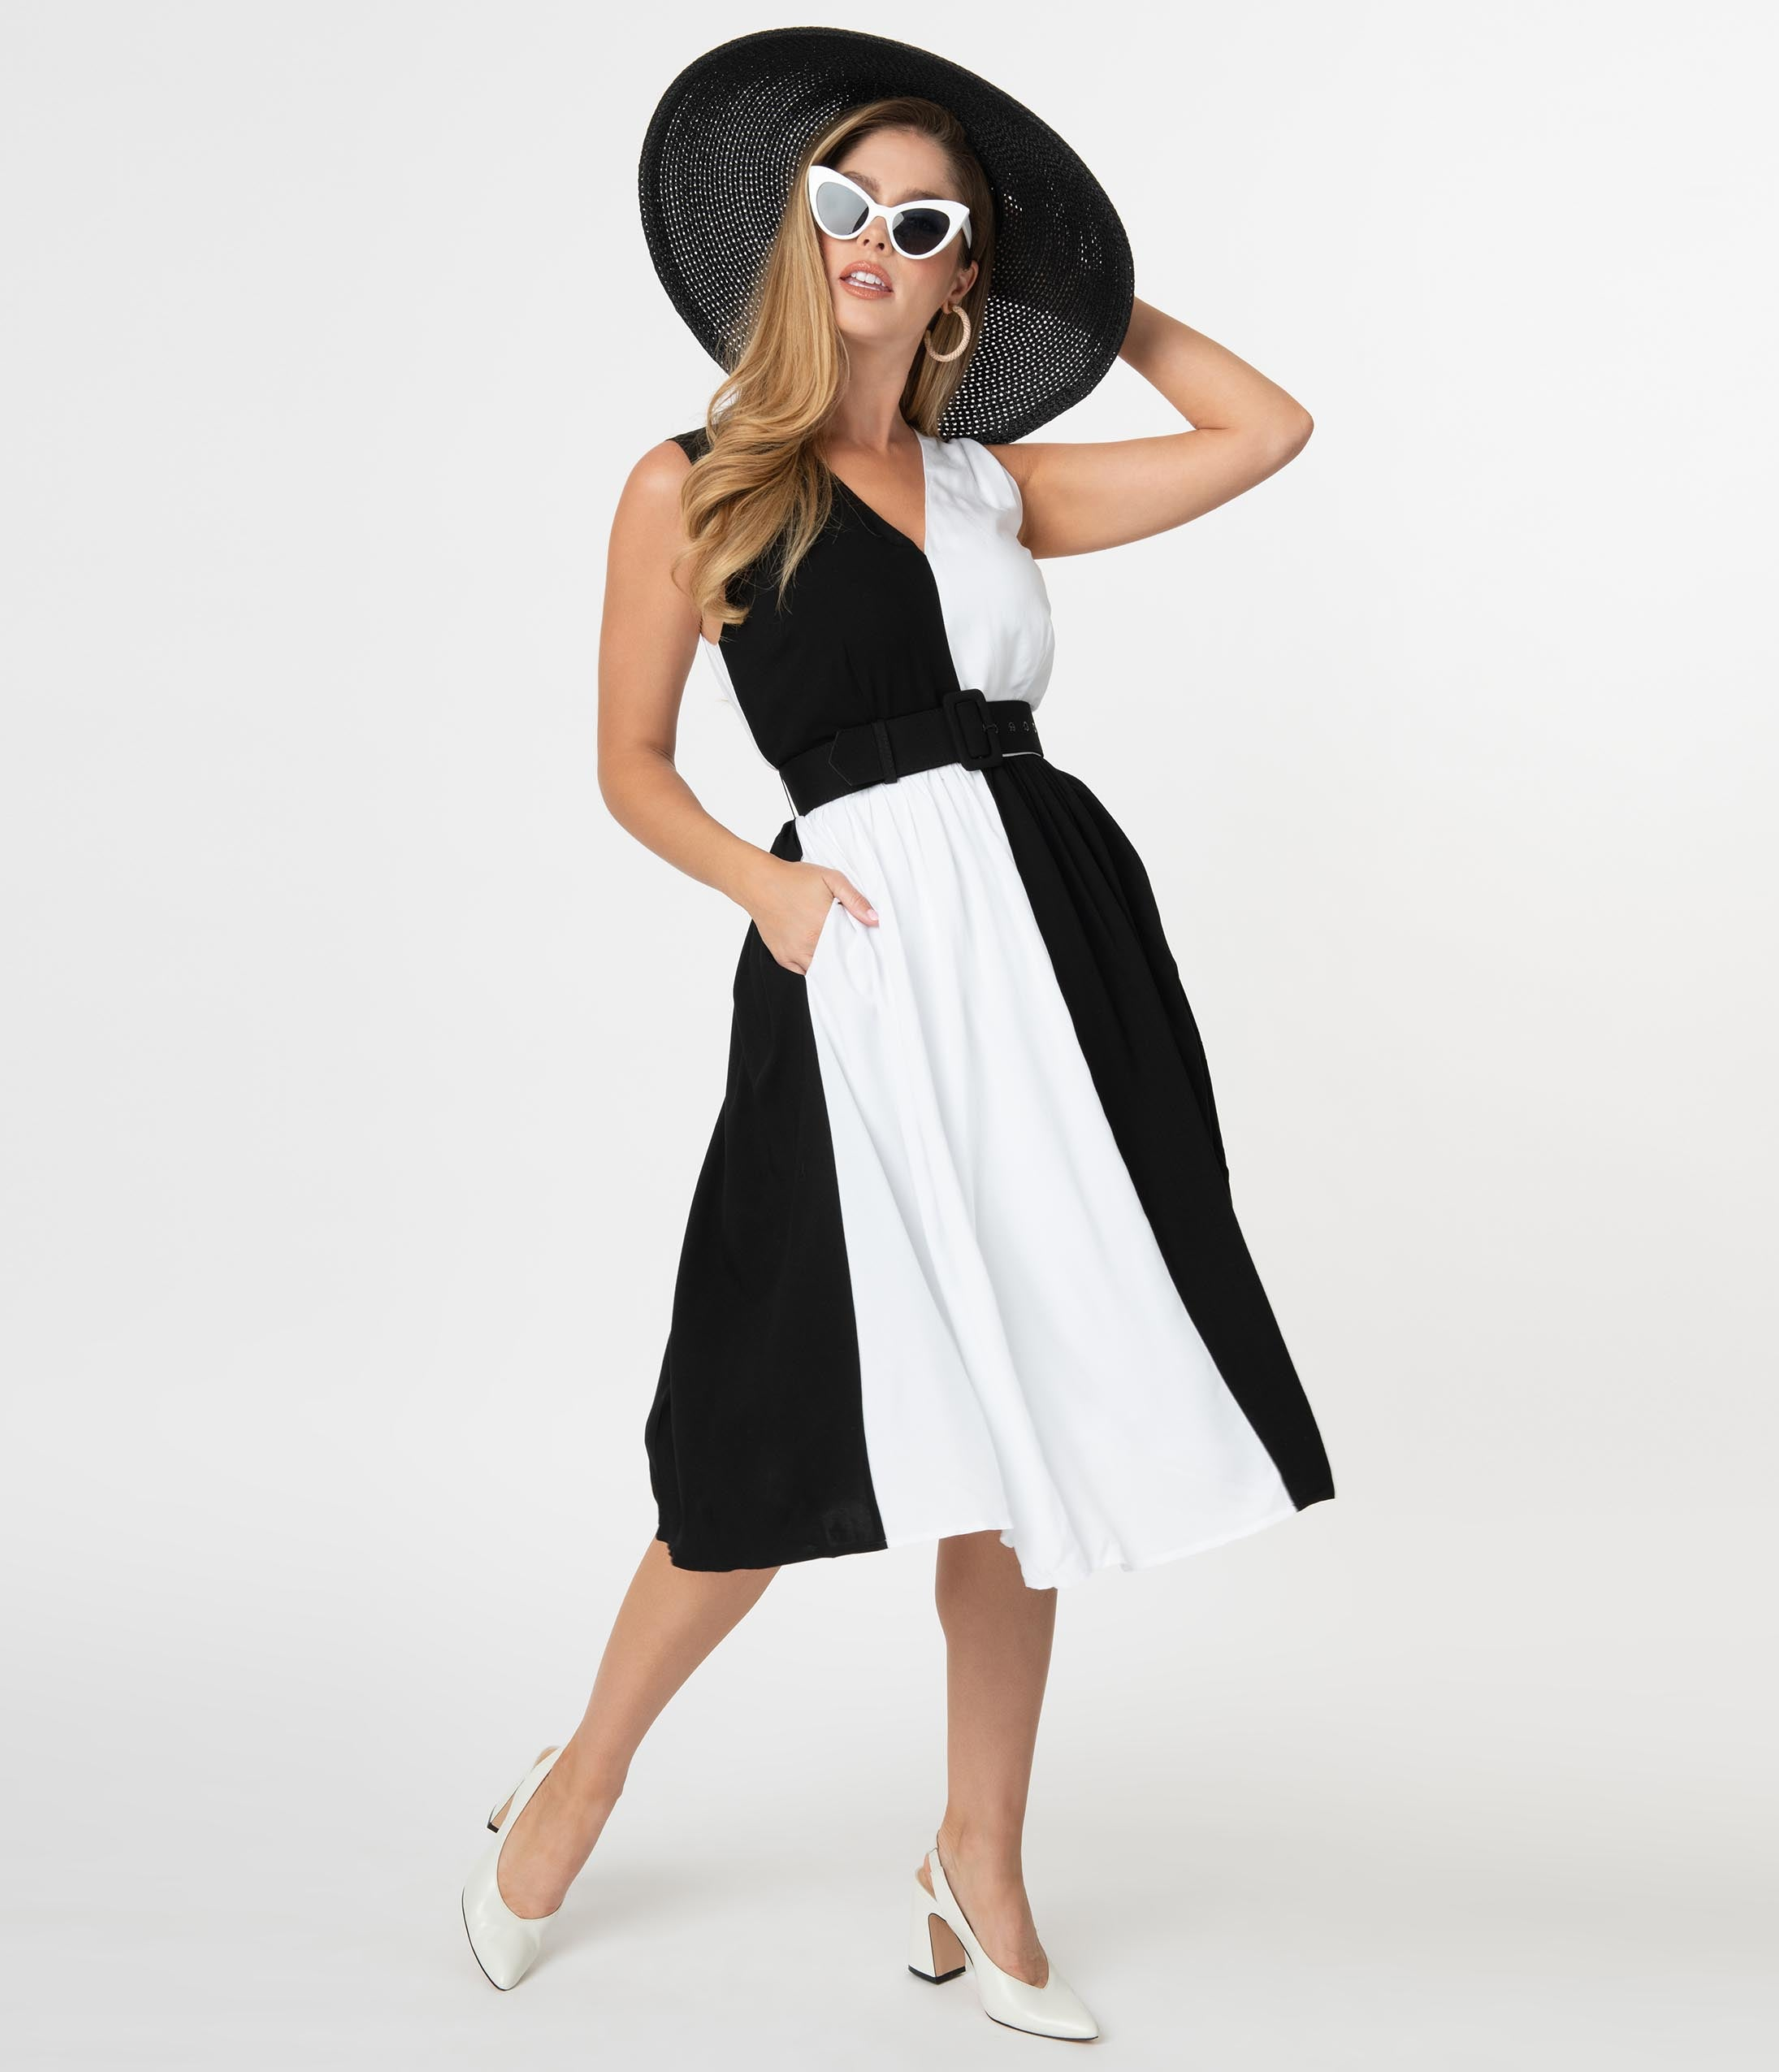 1950s Inspired Fashion: Recreate the Look Collectif 1950S Black  White Colorblock Enora Swing Dress $88.00 AT vintagedancer.com